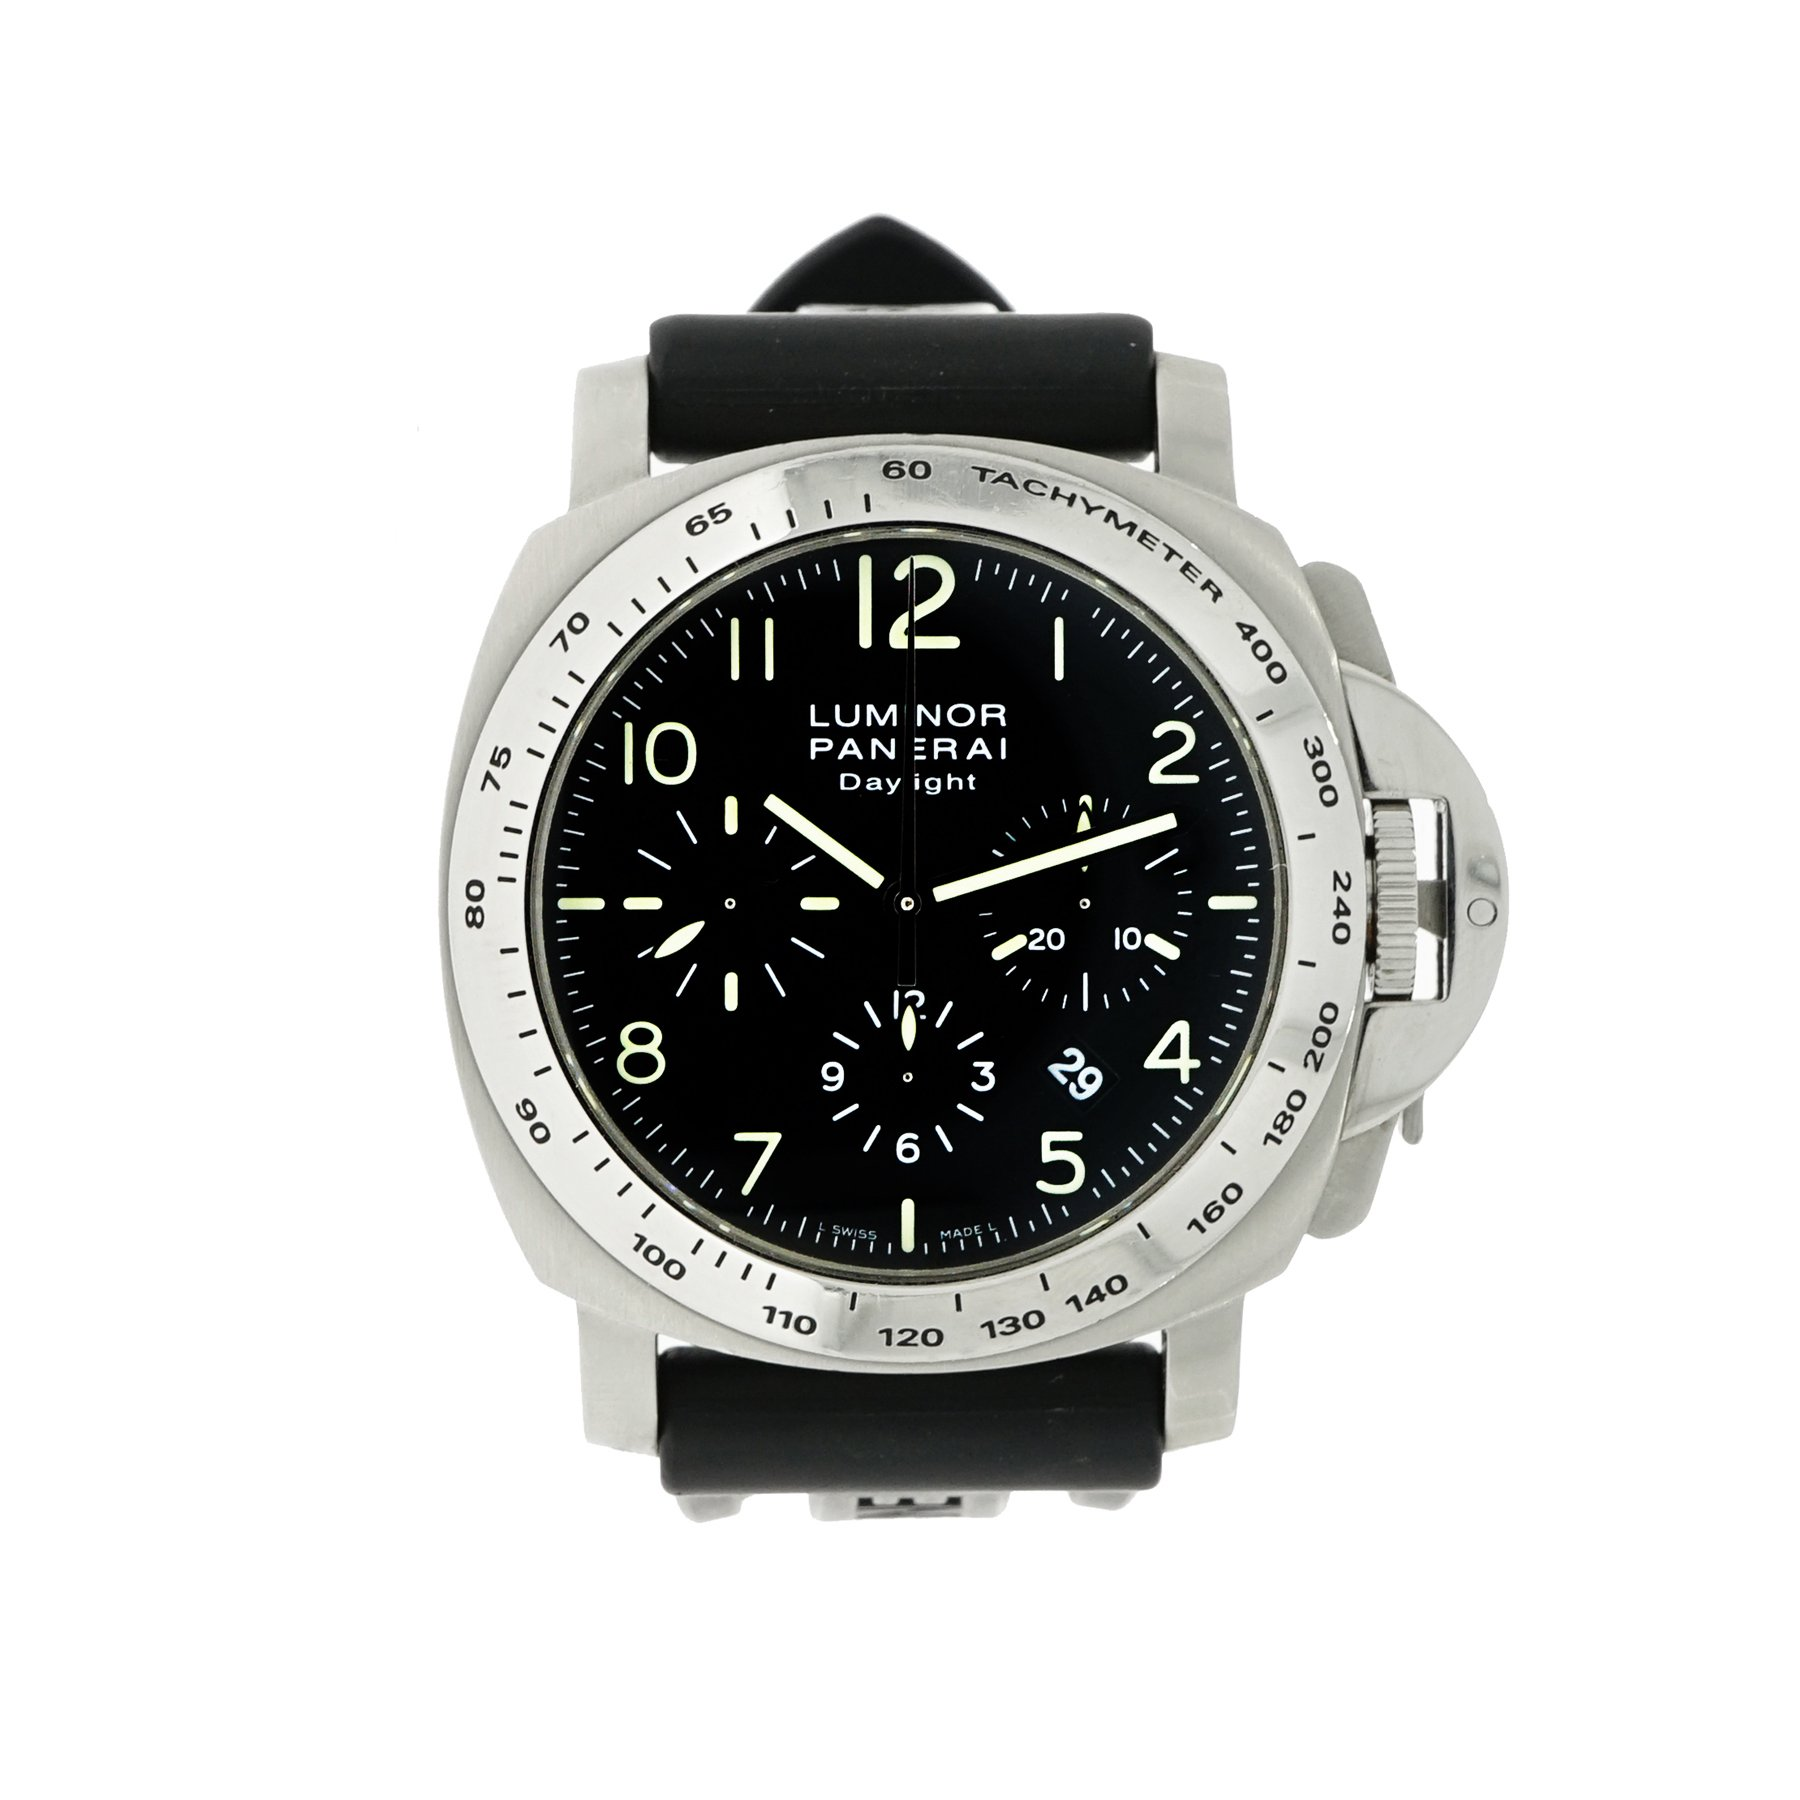 Panerai PAM 250 - Luminor Daylight Chronograph in Brushed Steel